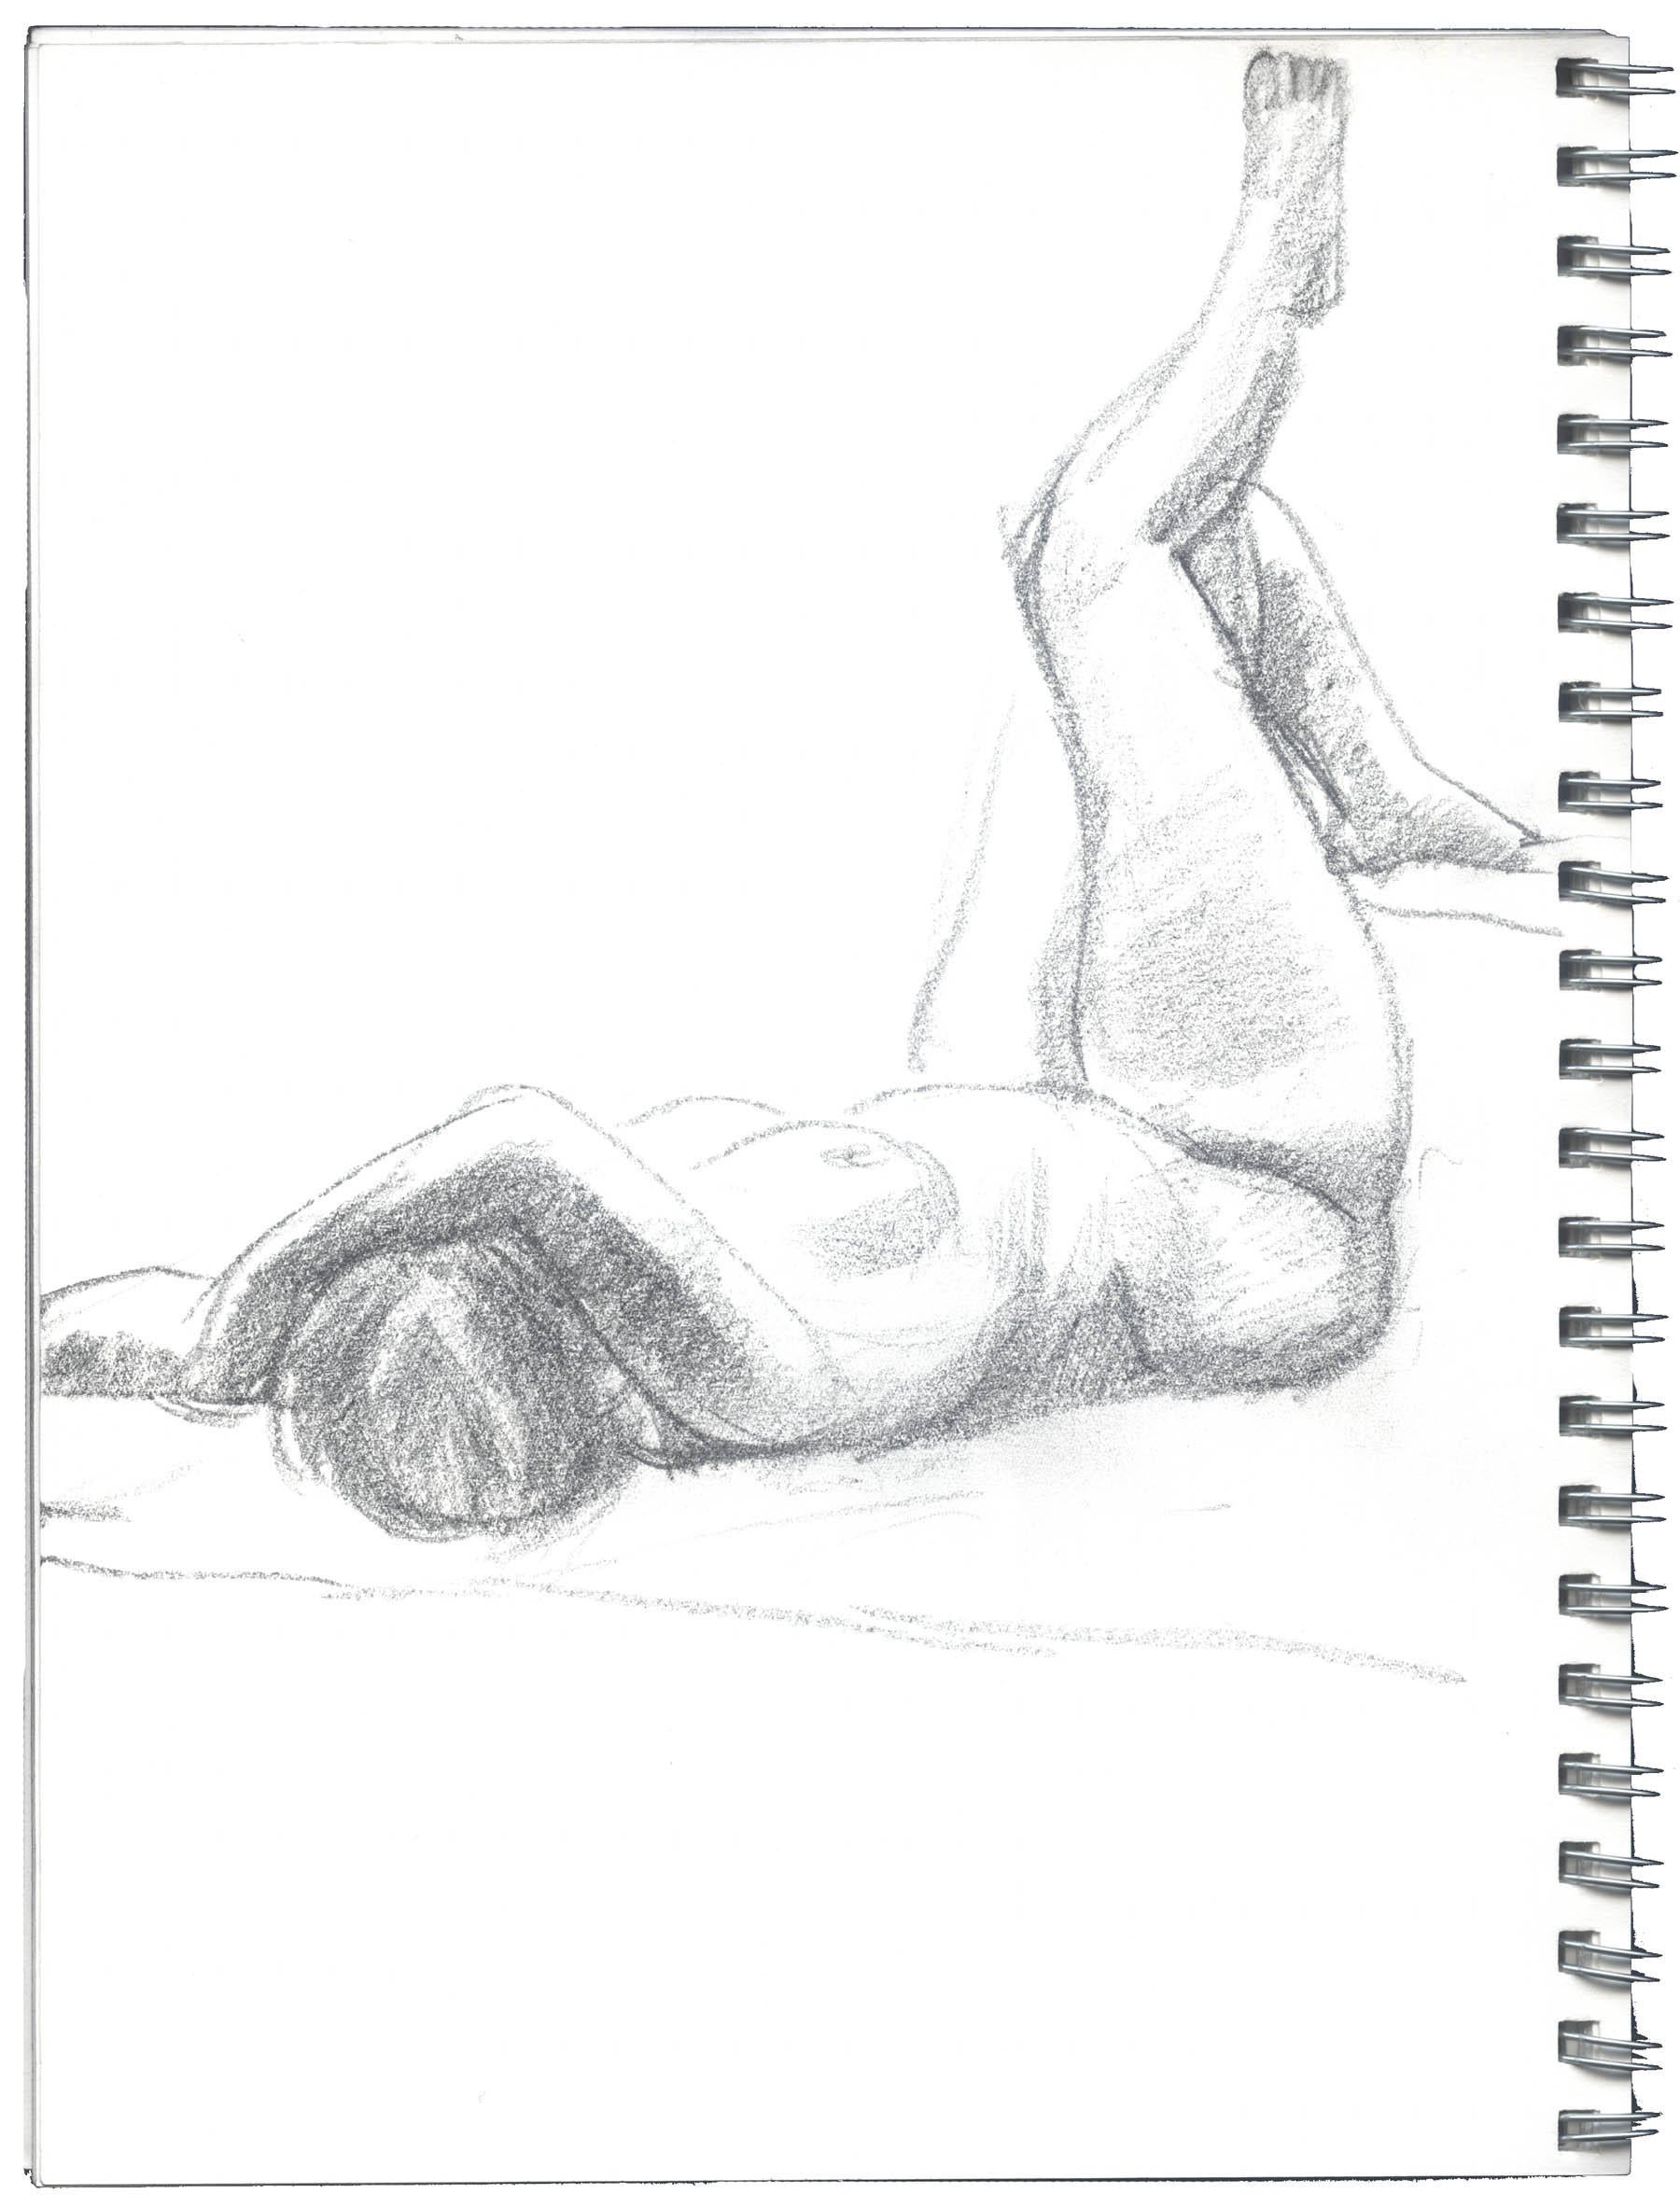 Reclining Female Figure image